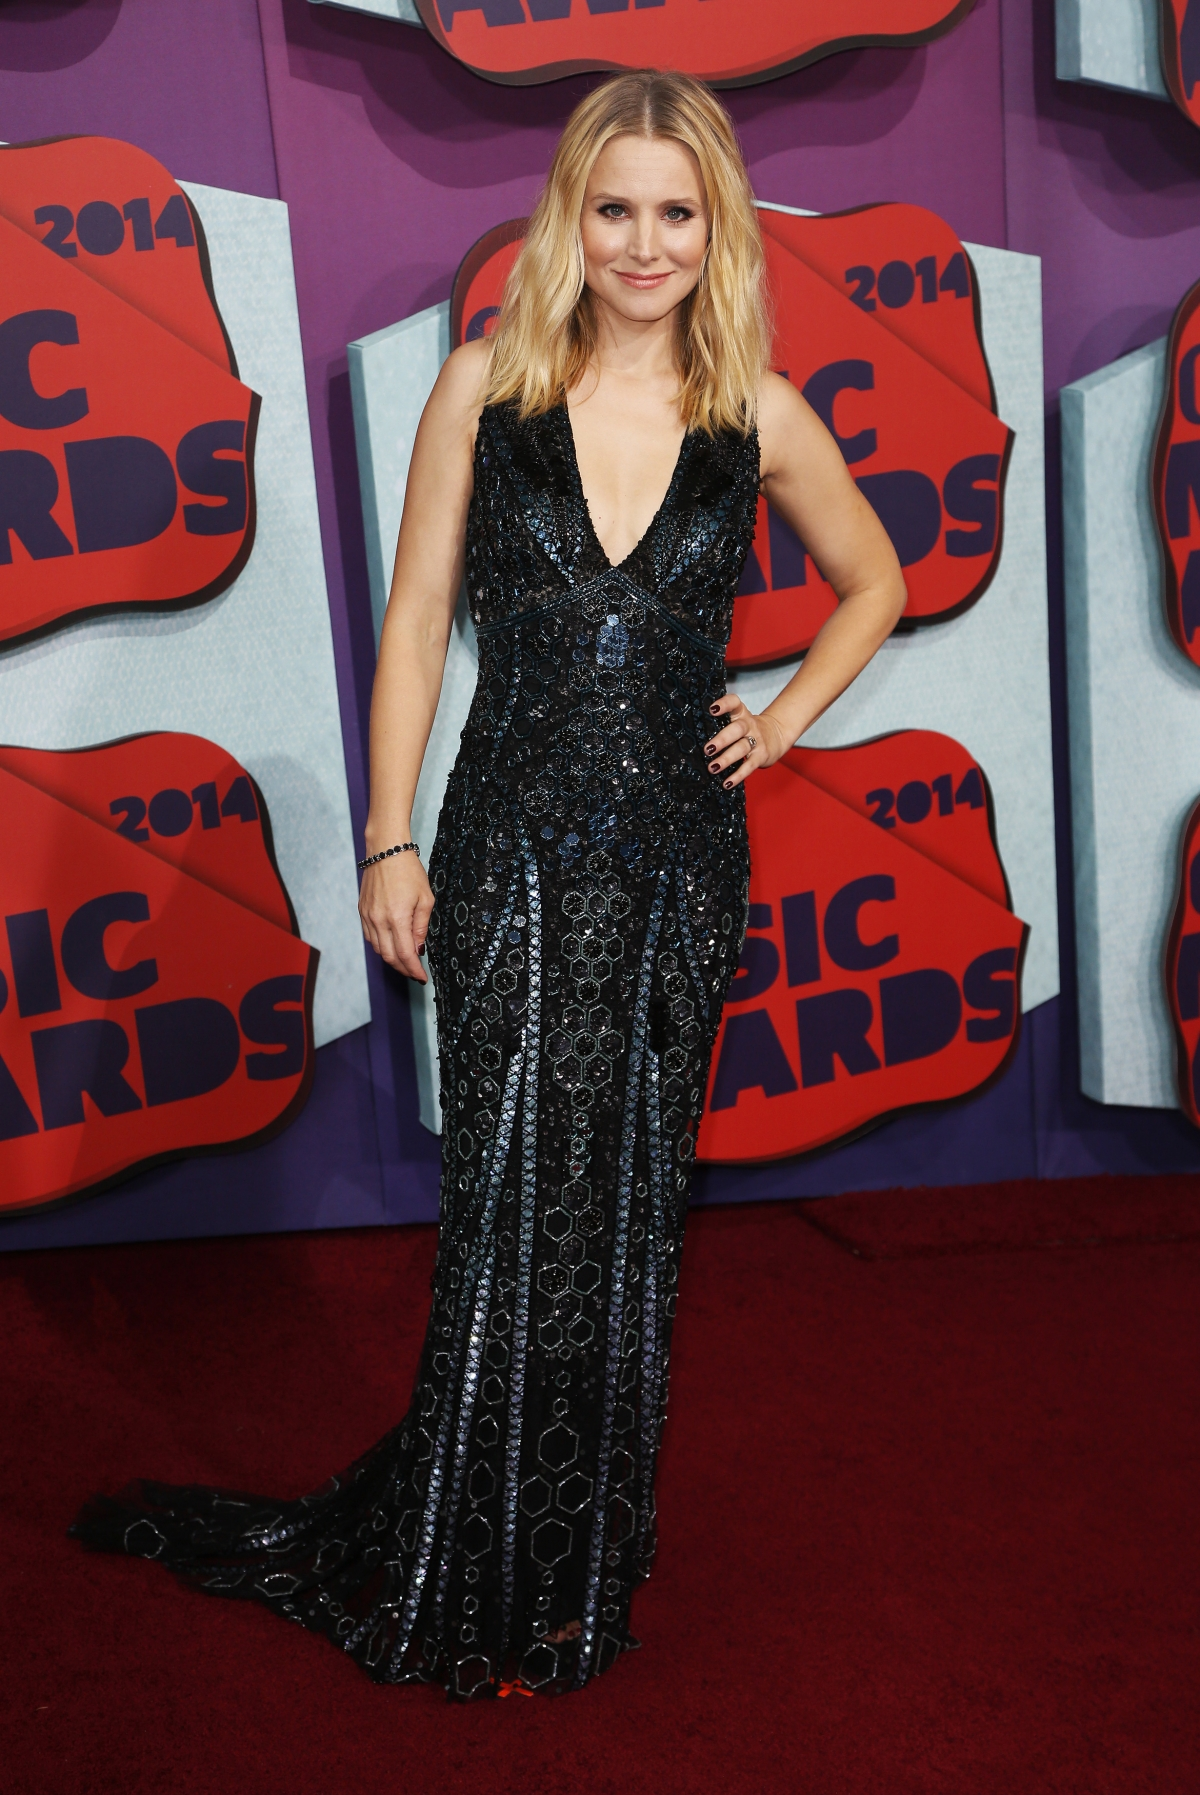 Host Kristen Bell arrives at the 2014 CMT Music Awards in Nashville, Tennessee June 4, 2014.